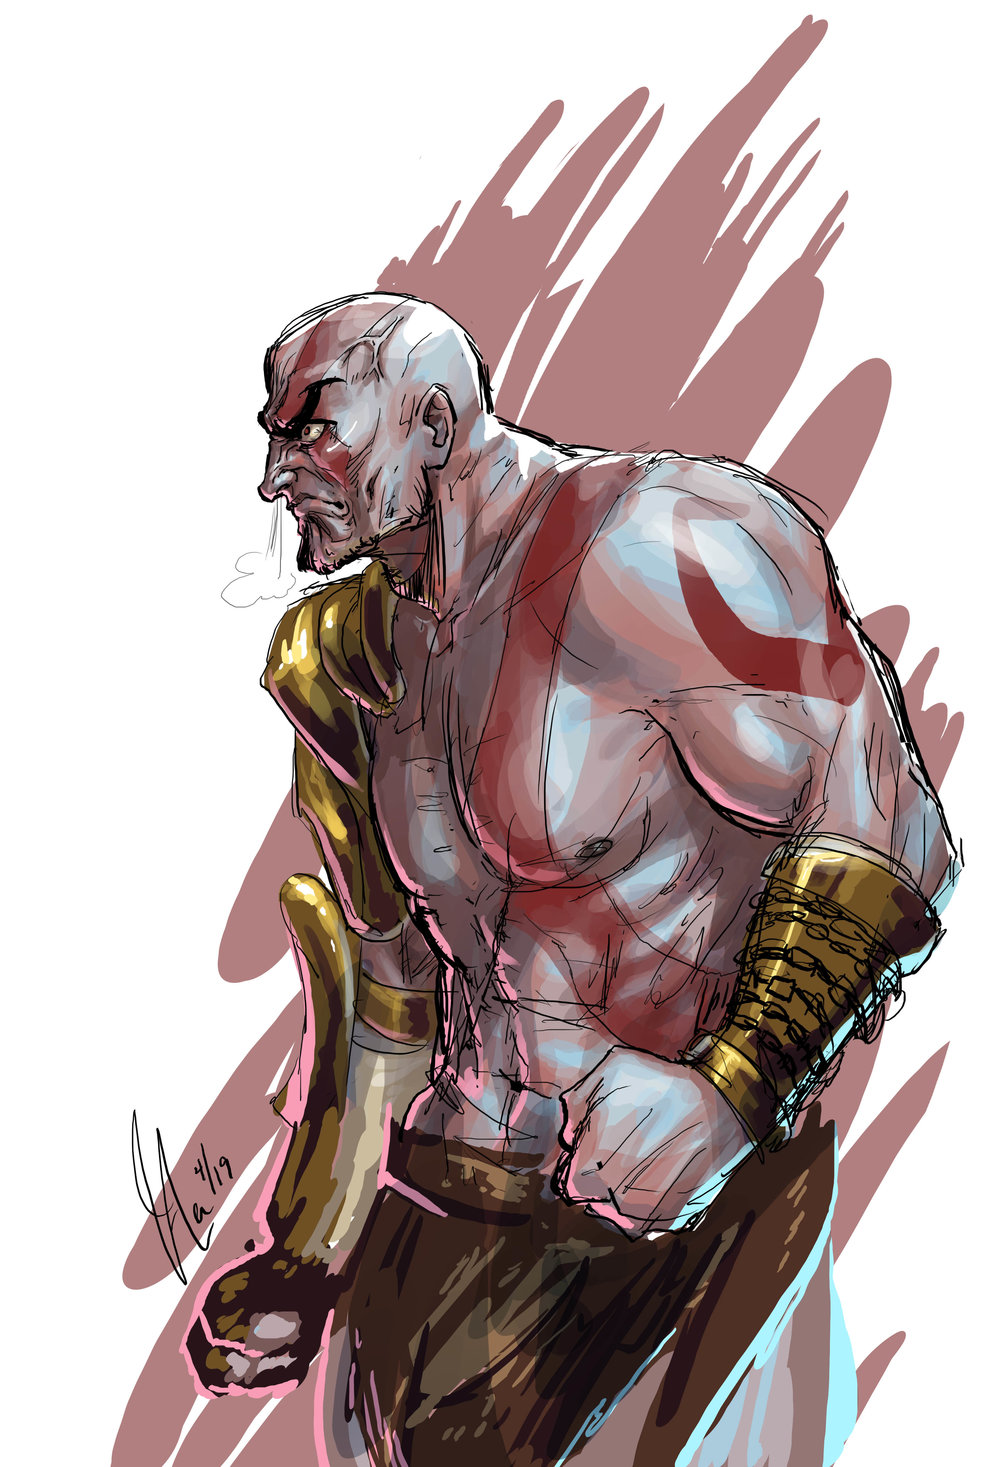 kratos being angry 1.jpg